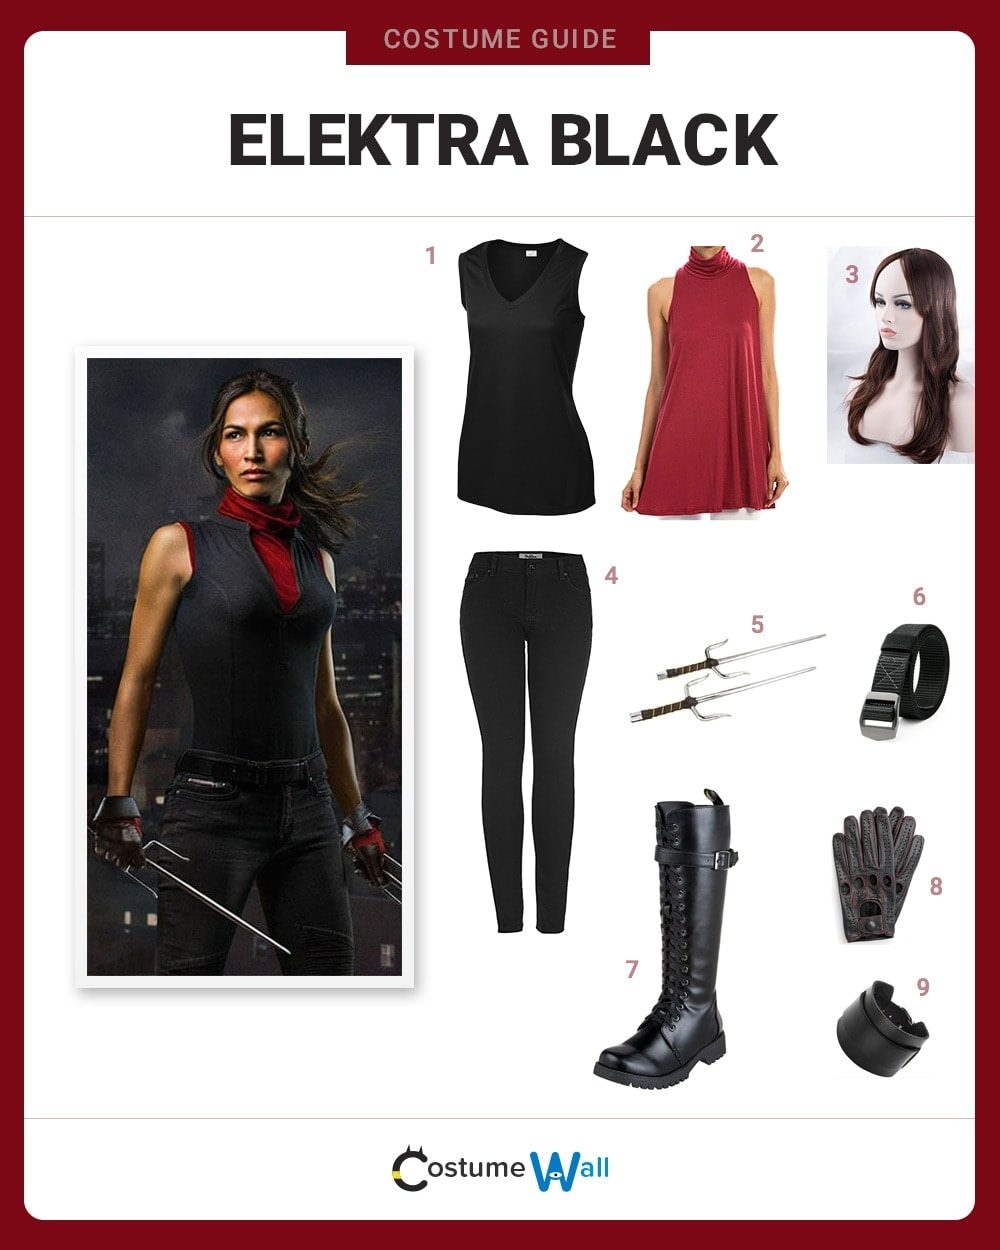 Elektra Black Costume Guide